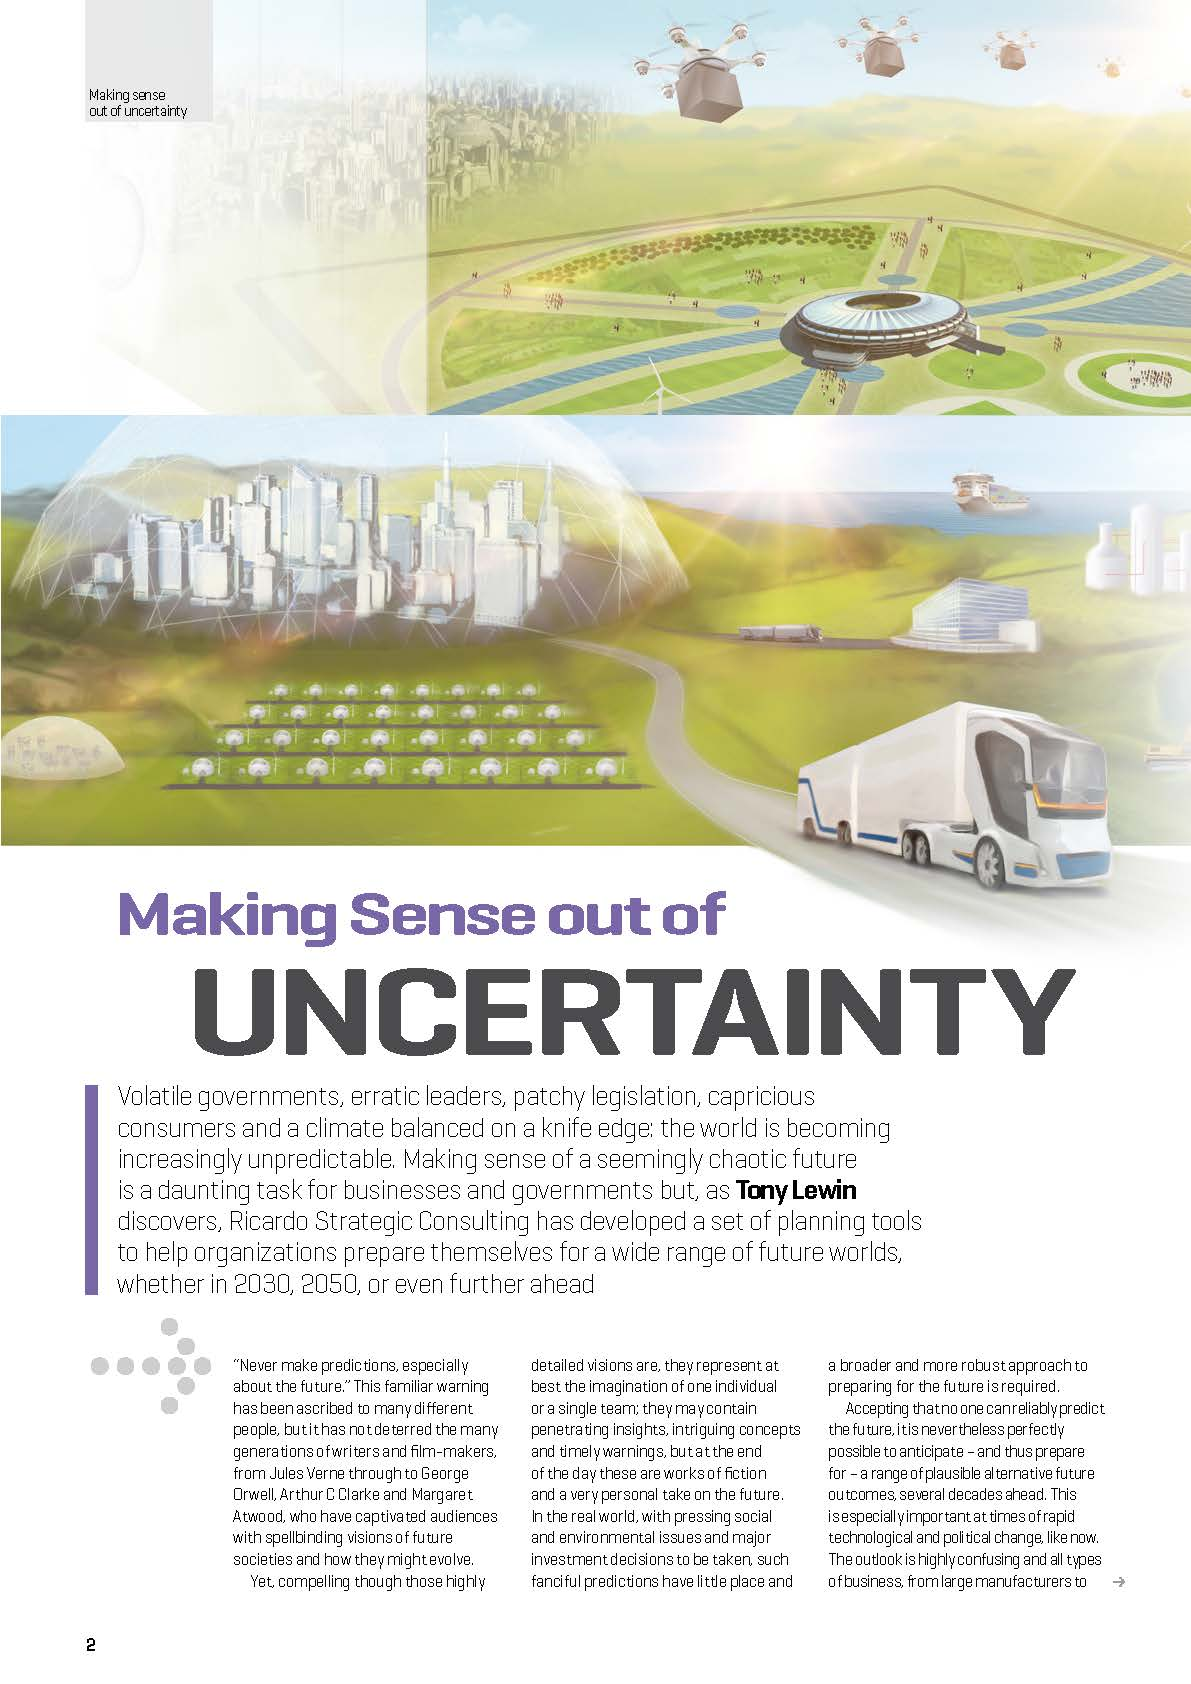 Making sense out of uncertainty